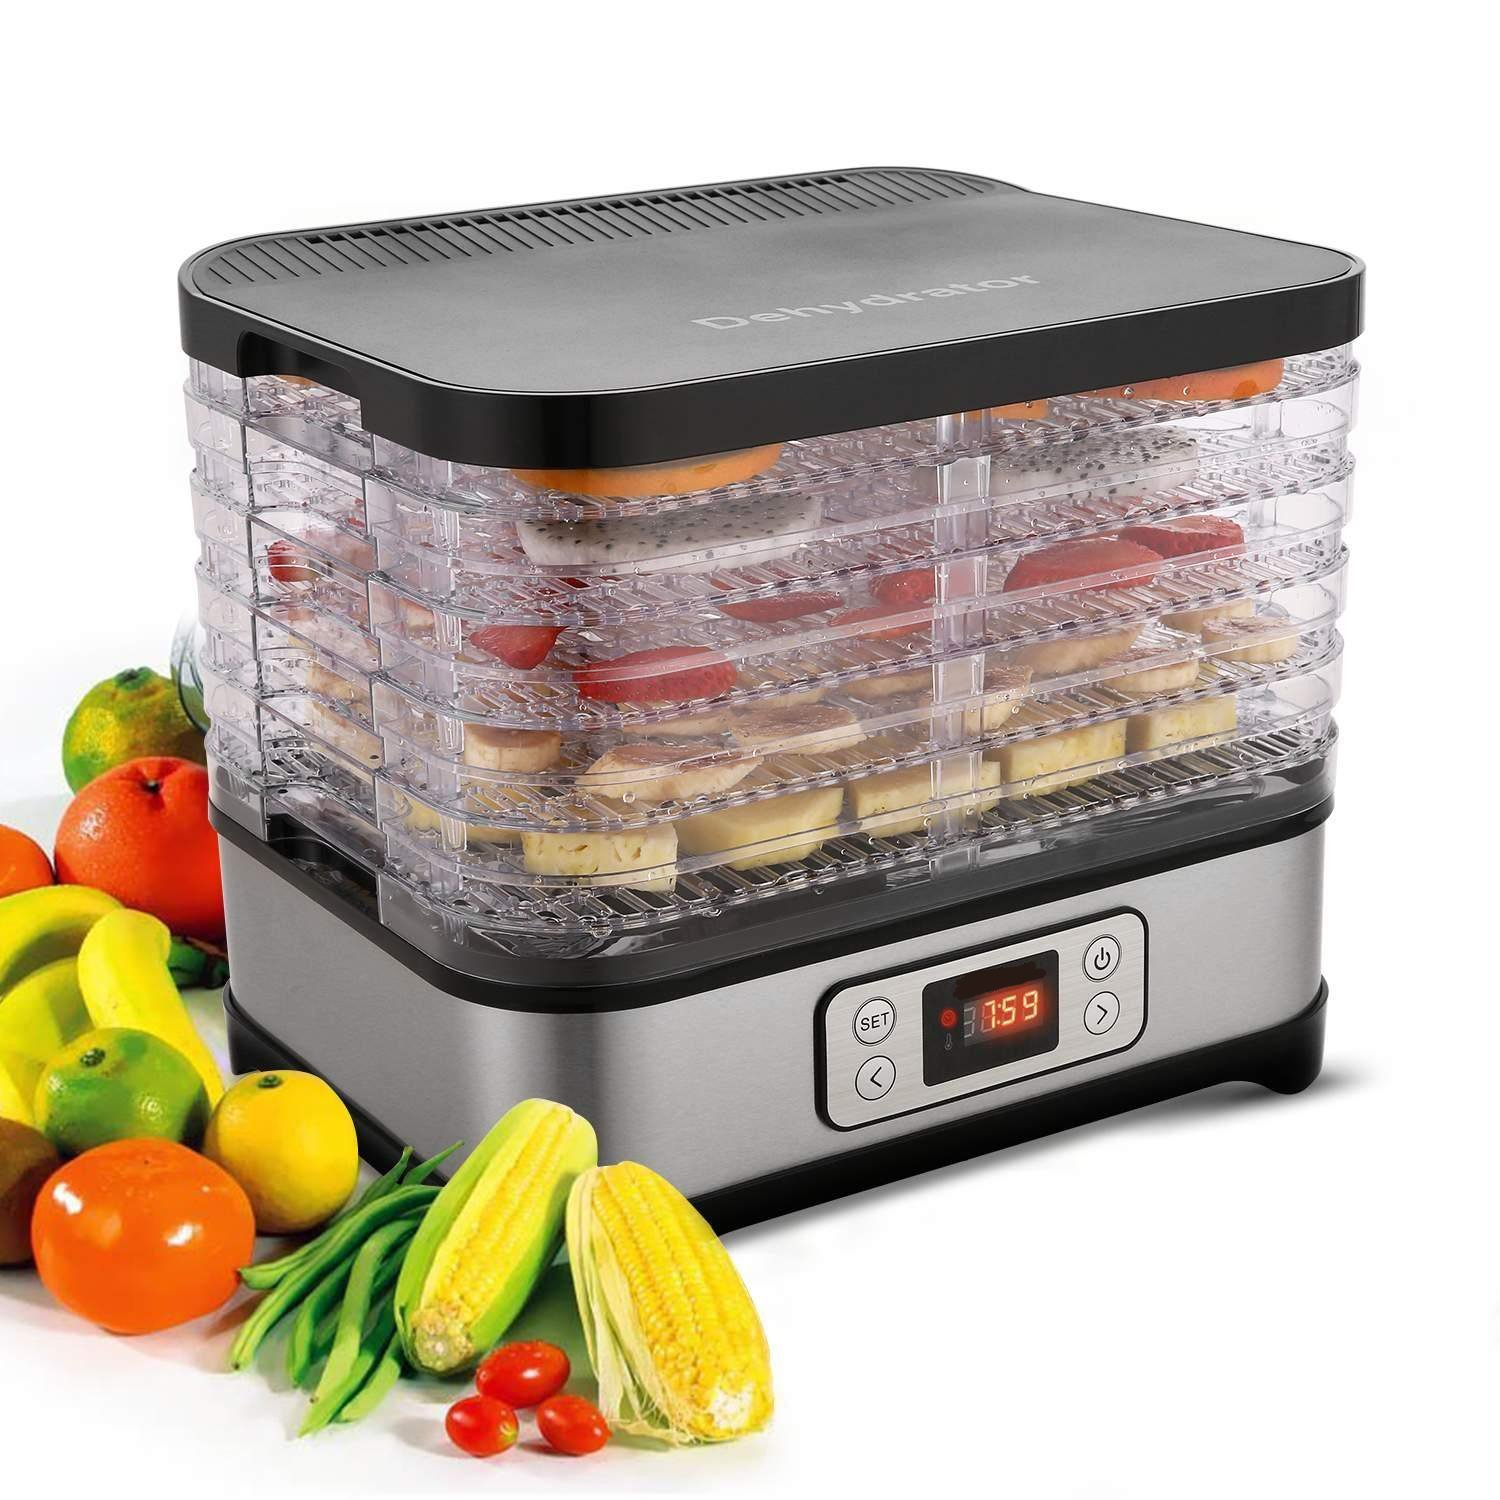 Professional Stainless Steel Food Dehydrator Machine with 5 Stackable Trays, Digital Temperature Settings for Meat or Beef Fruit Vegetable Dryer